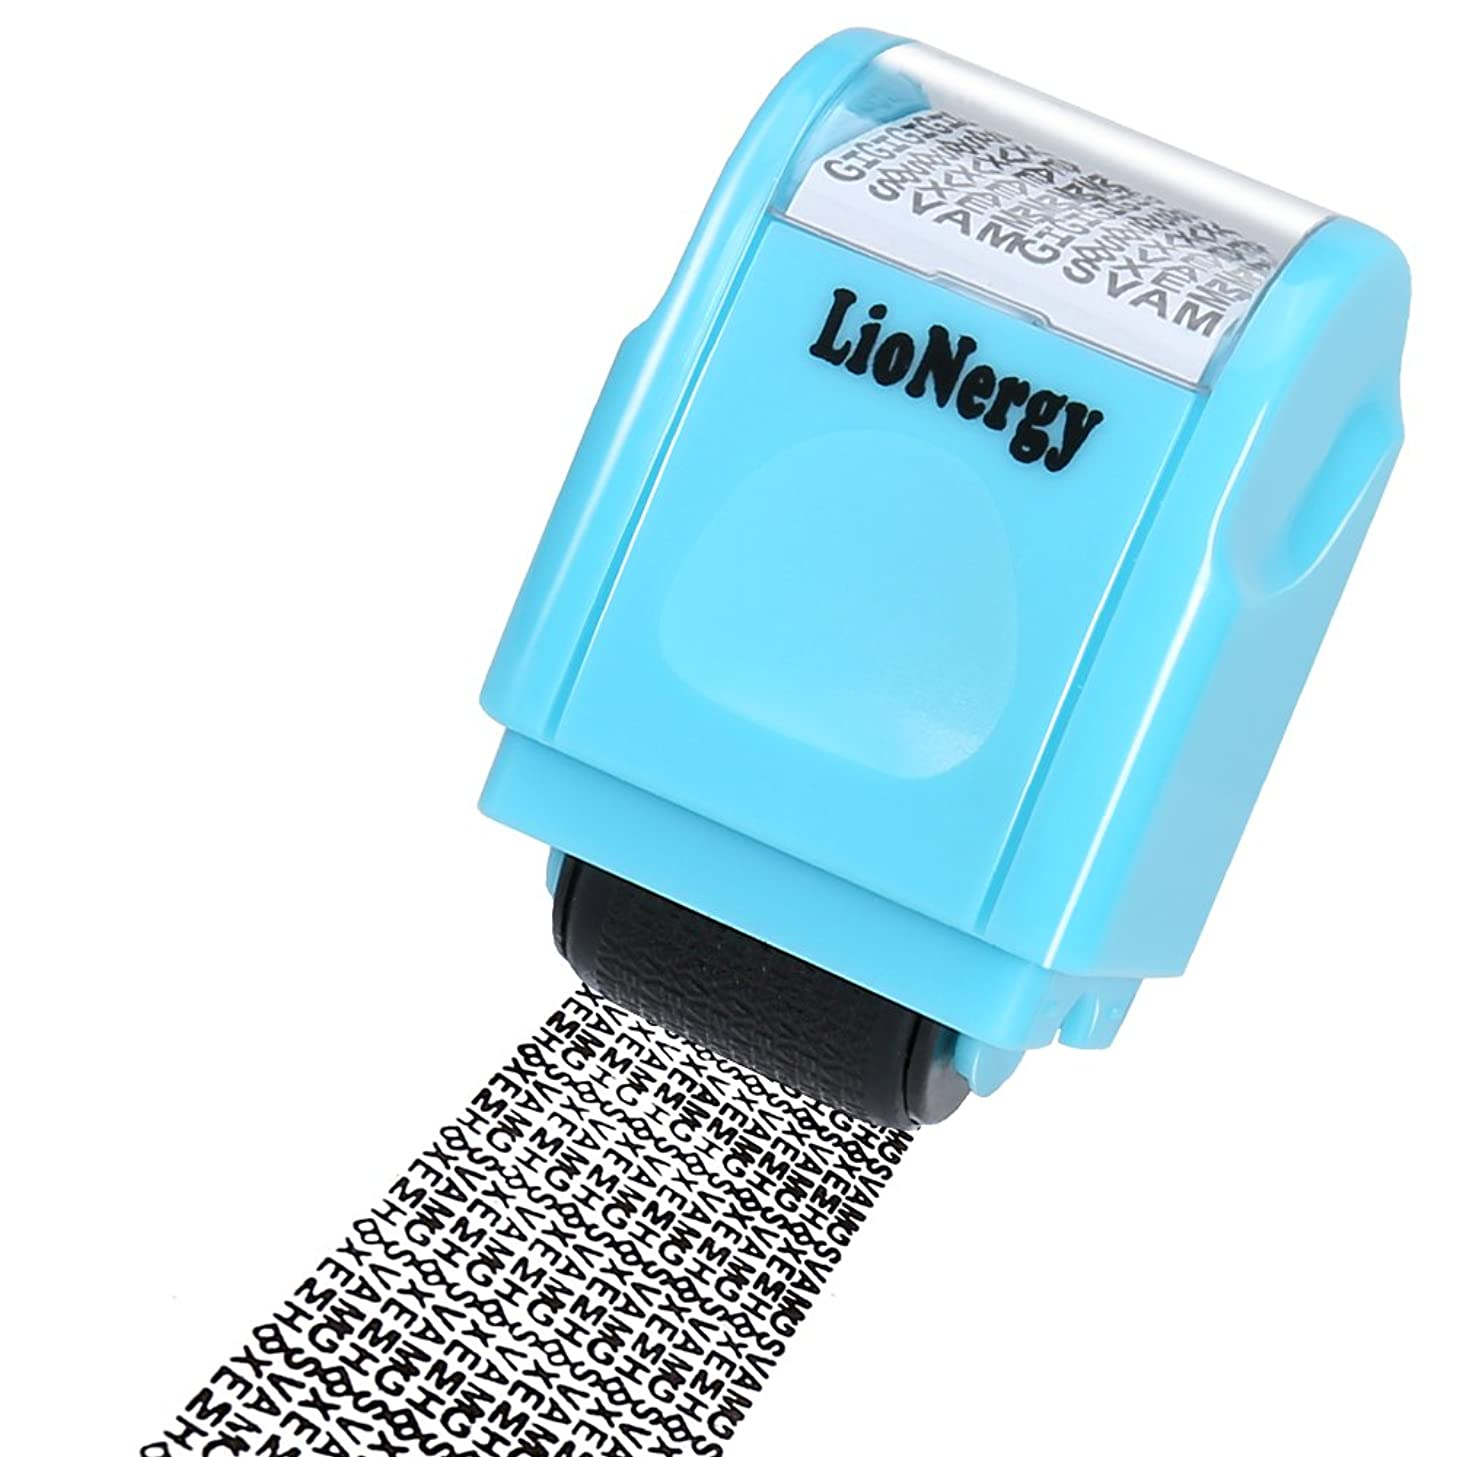 Identity Protection Roller Stamp Lionergy Wide Roller Identity Theft Prevention Security Stamp (Blue Roller Stamp)